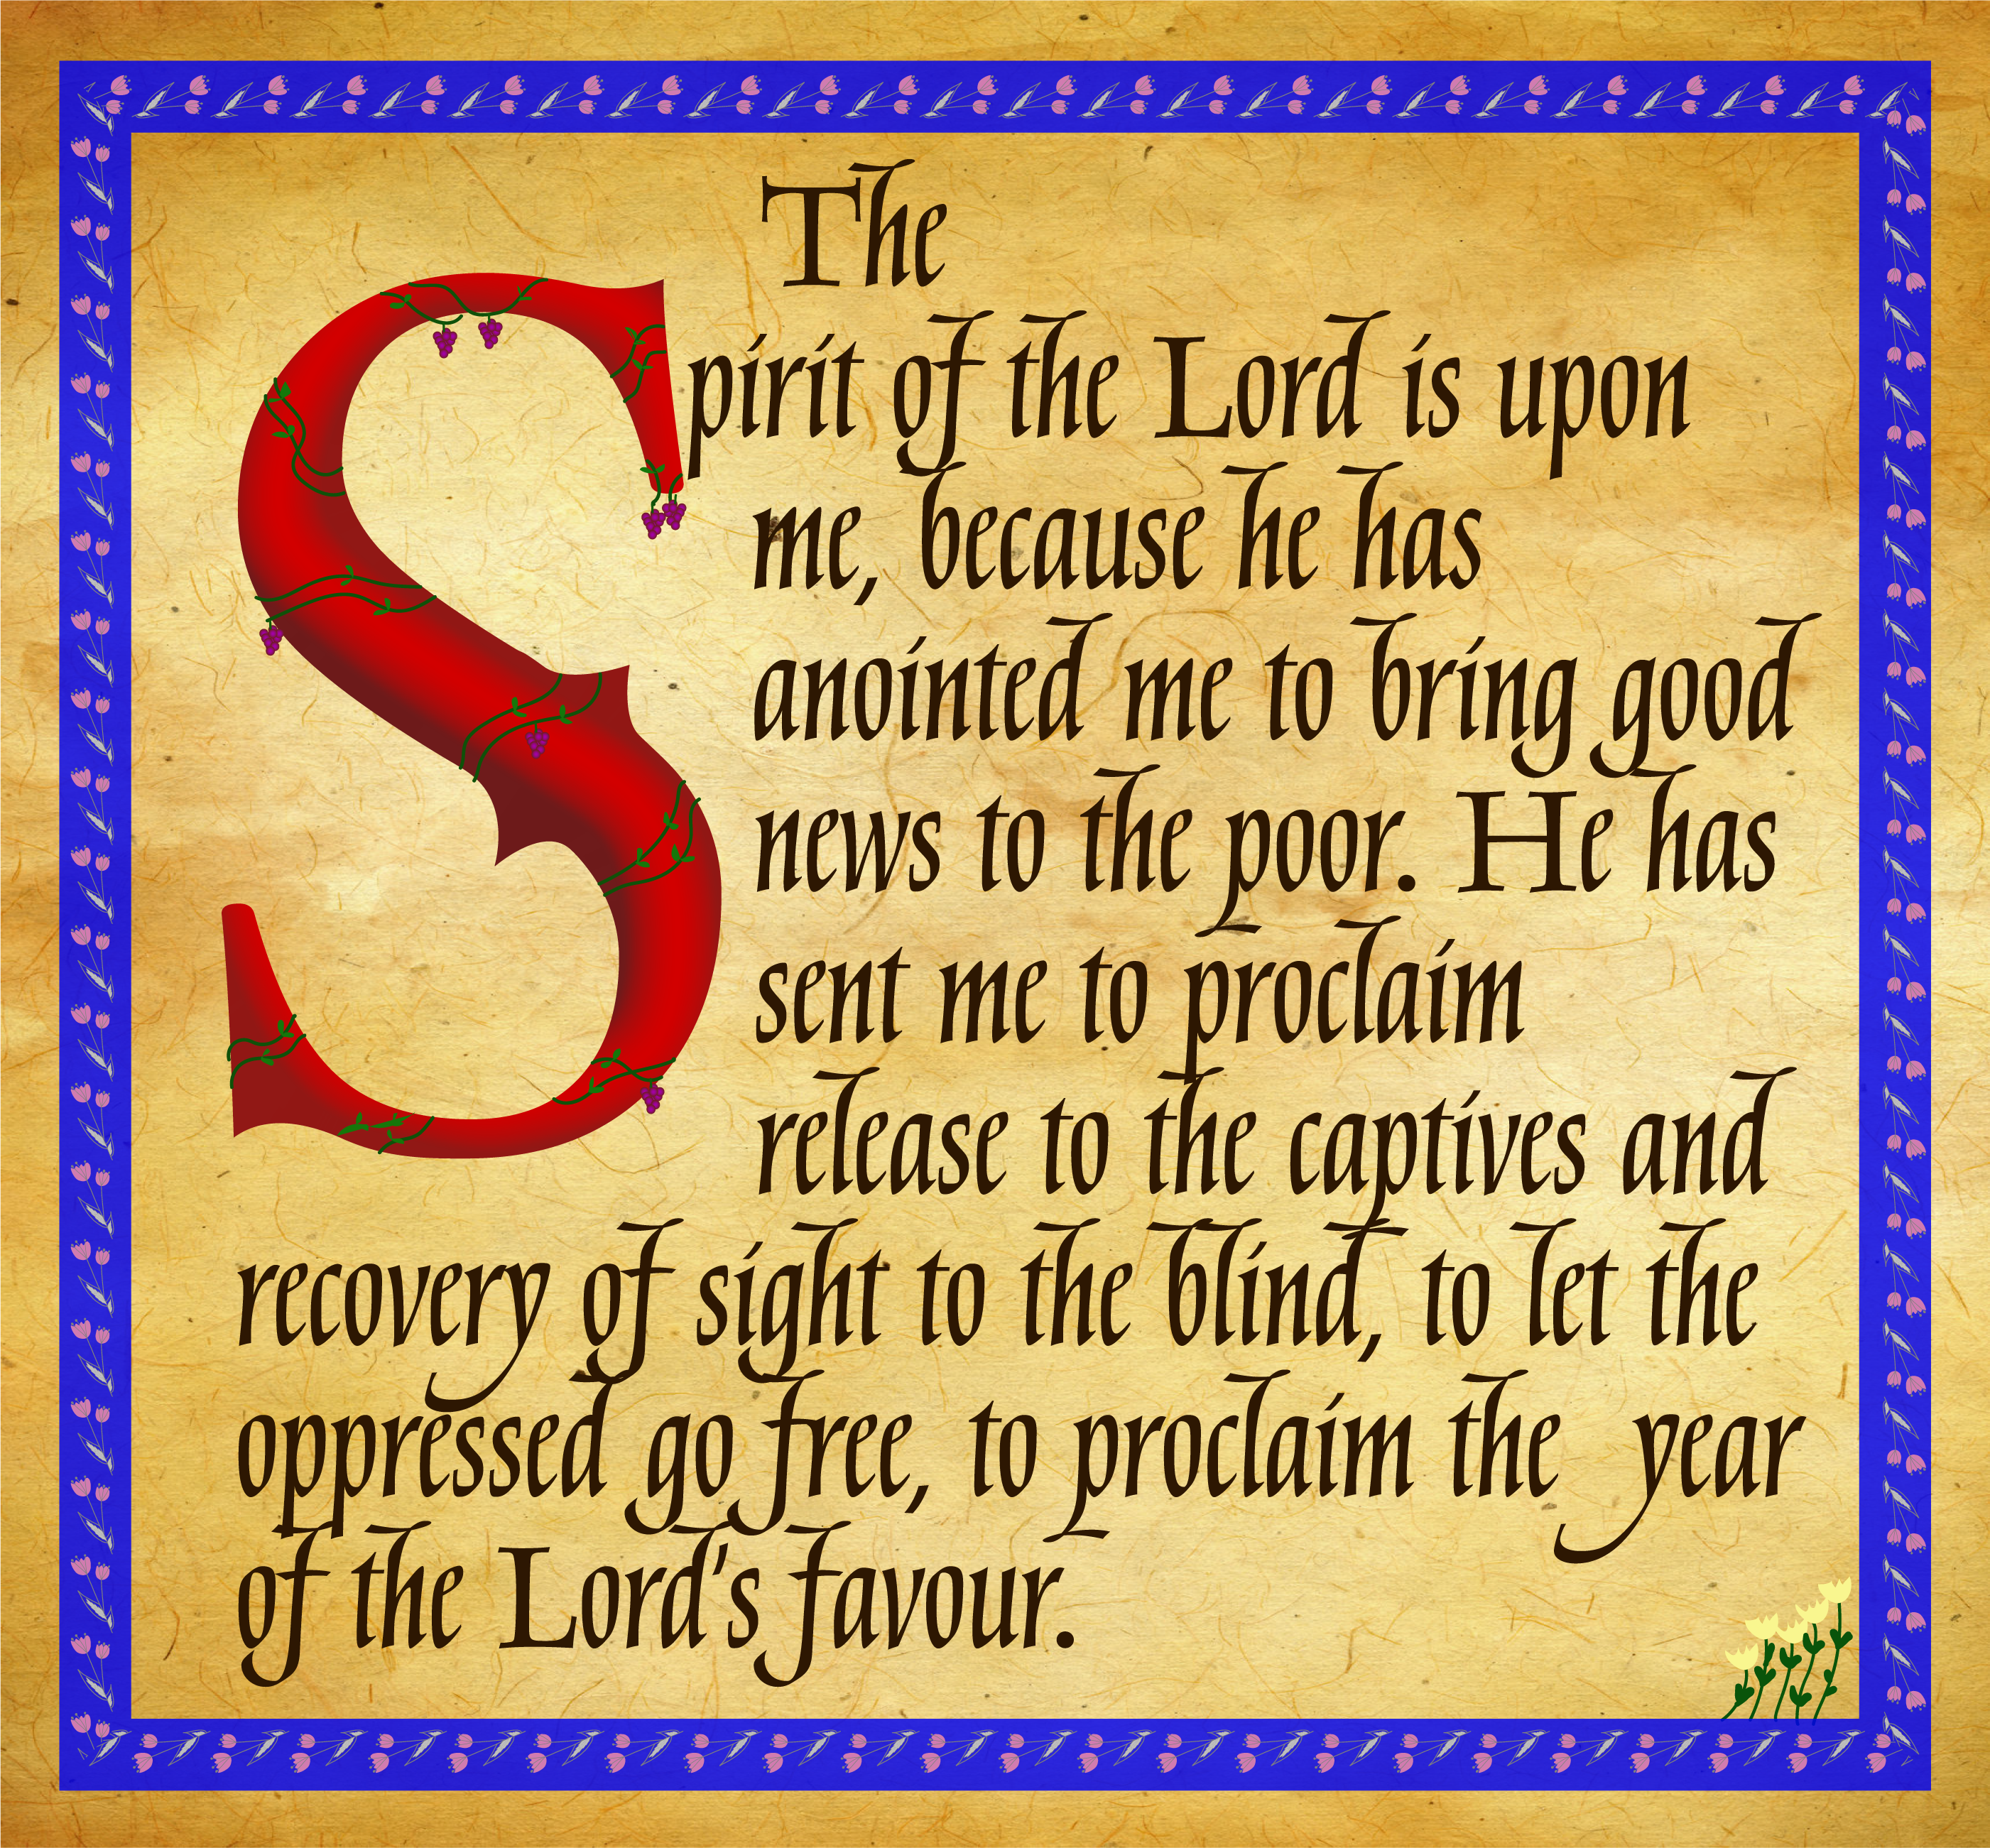 Calligraphy saying: The Spirit of the Lord is upon me, because he has anointed me to bring good news to the poor. He sent me to proclaim release to the captives and recovery of sight to the blind, to let the oppressed go free, to proclaim the year of the Lord's favour.